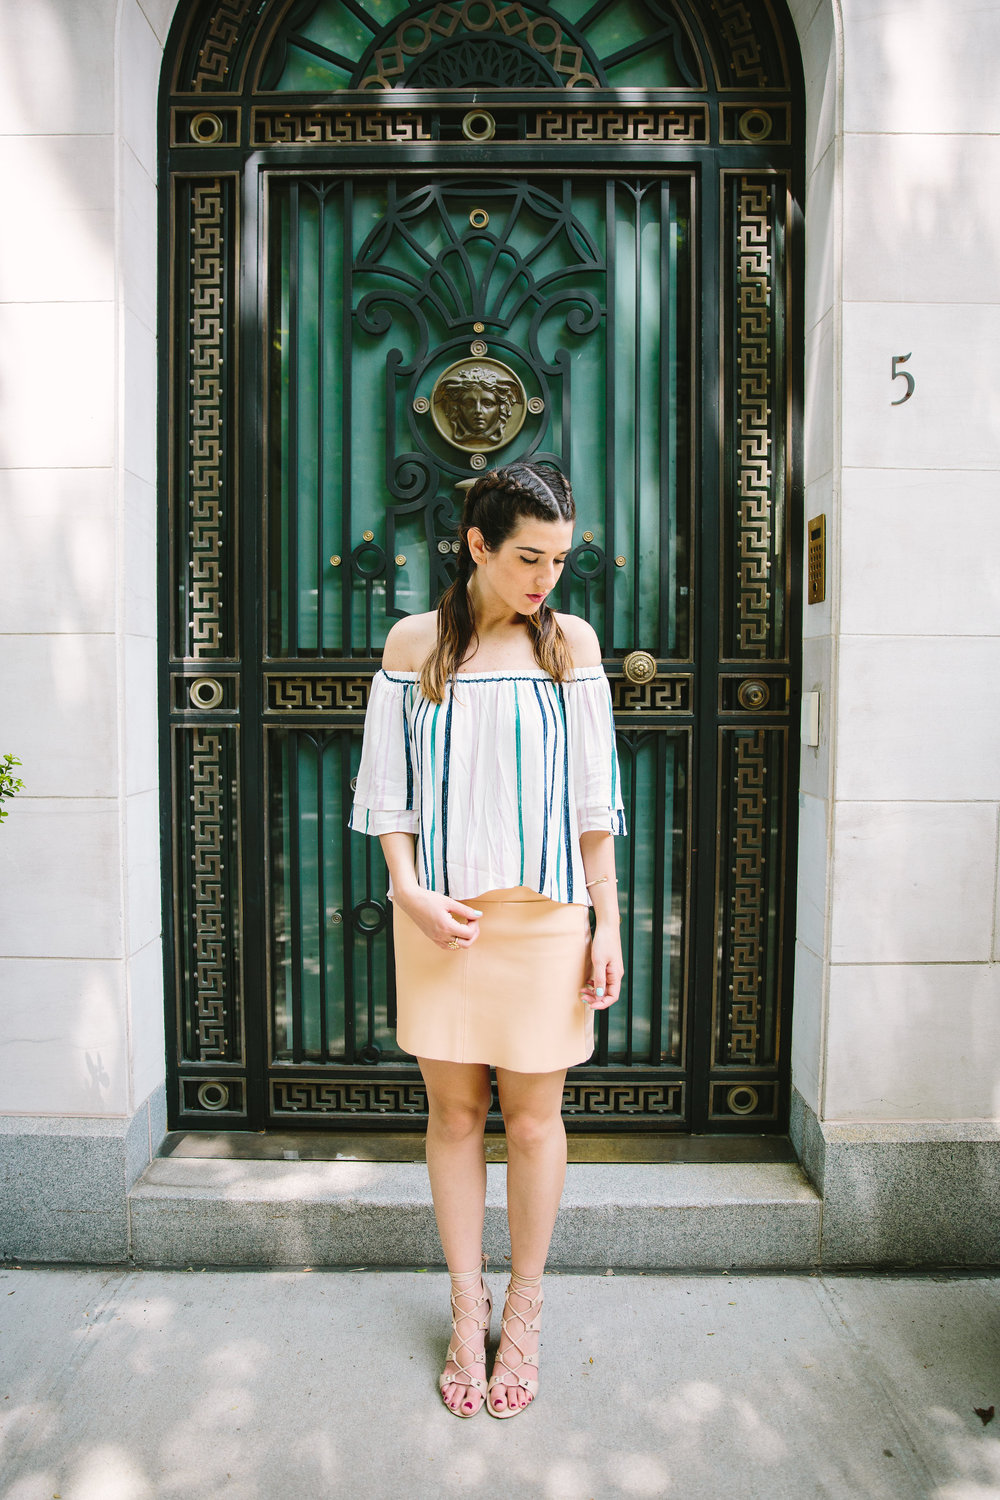 Striped Off-The-Shoulder Shoulder Top Shop Trescool Louboutins & Love Fashion Blog Esther Santer NYC Street Style Blogger Outfit OOTD Mini Skirt Pastel Pink Trendy Ivanka Trump Nude Lace Up Heels Gold Ring Boxer Braid Hairstyle Inspo Summer Photoshoot.jpg